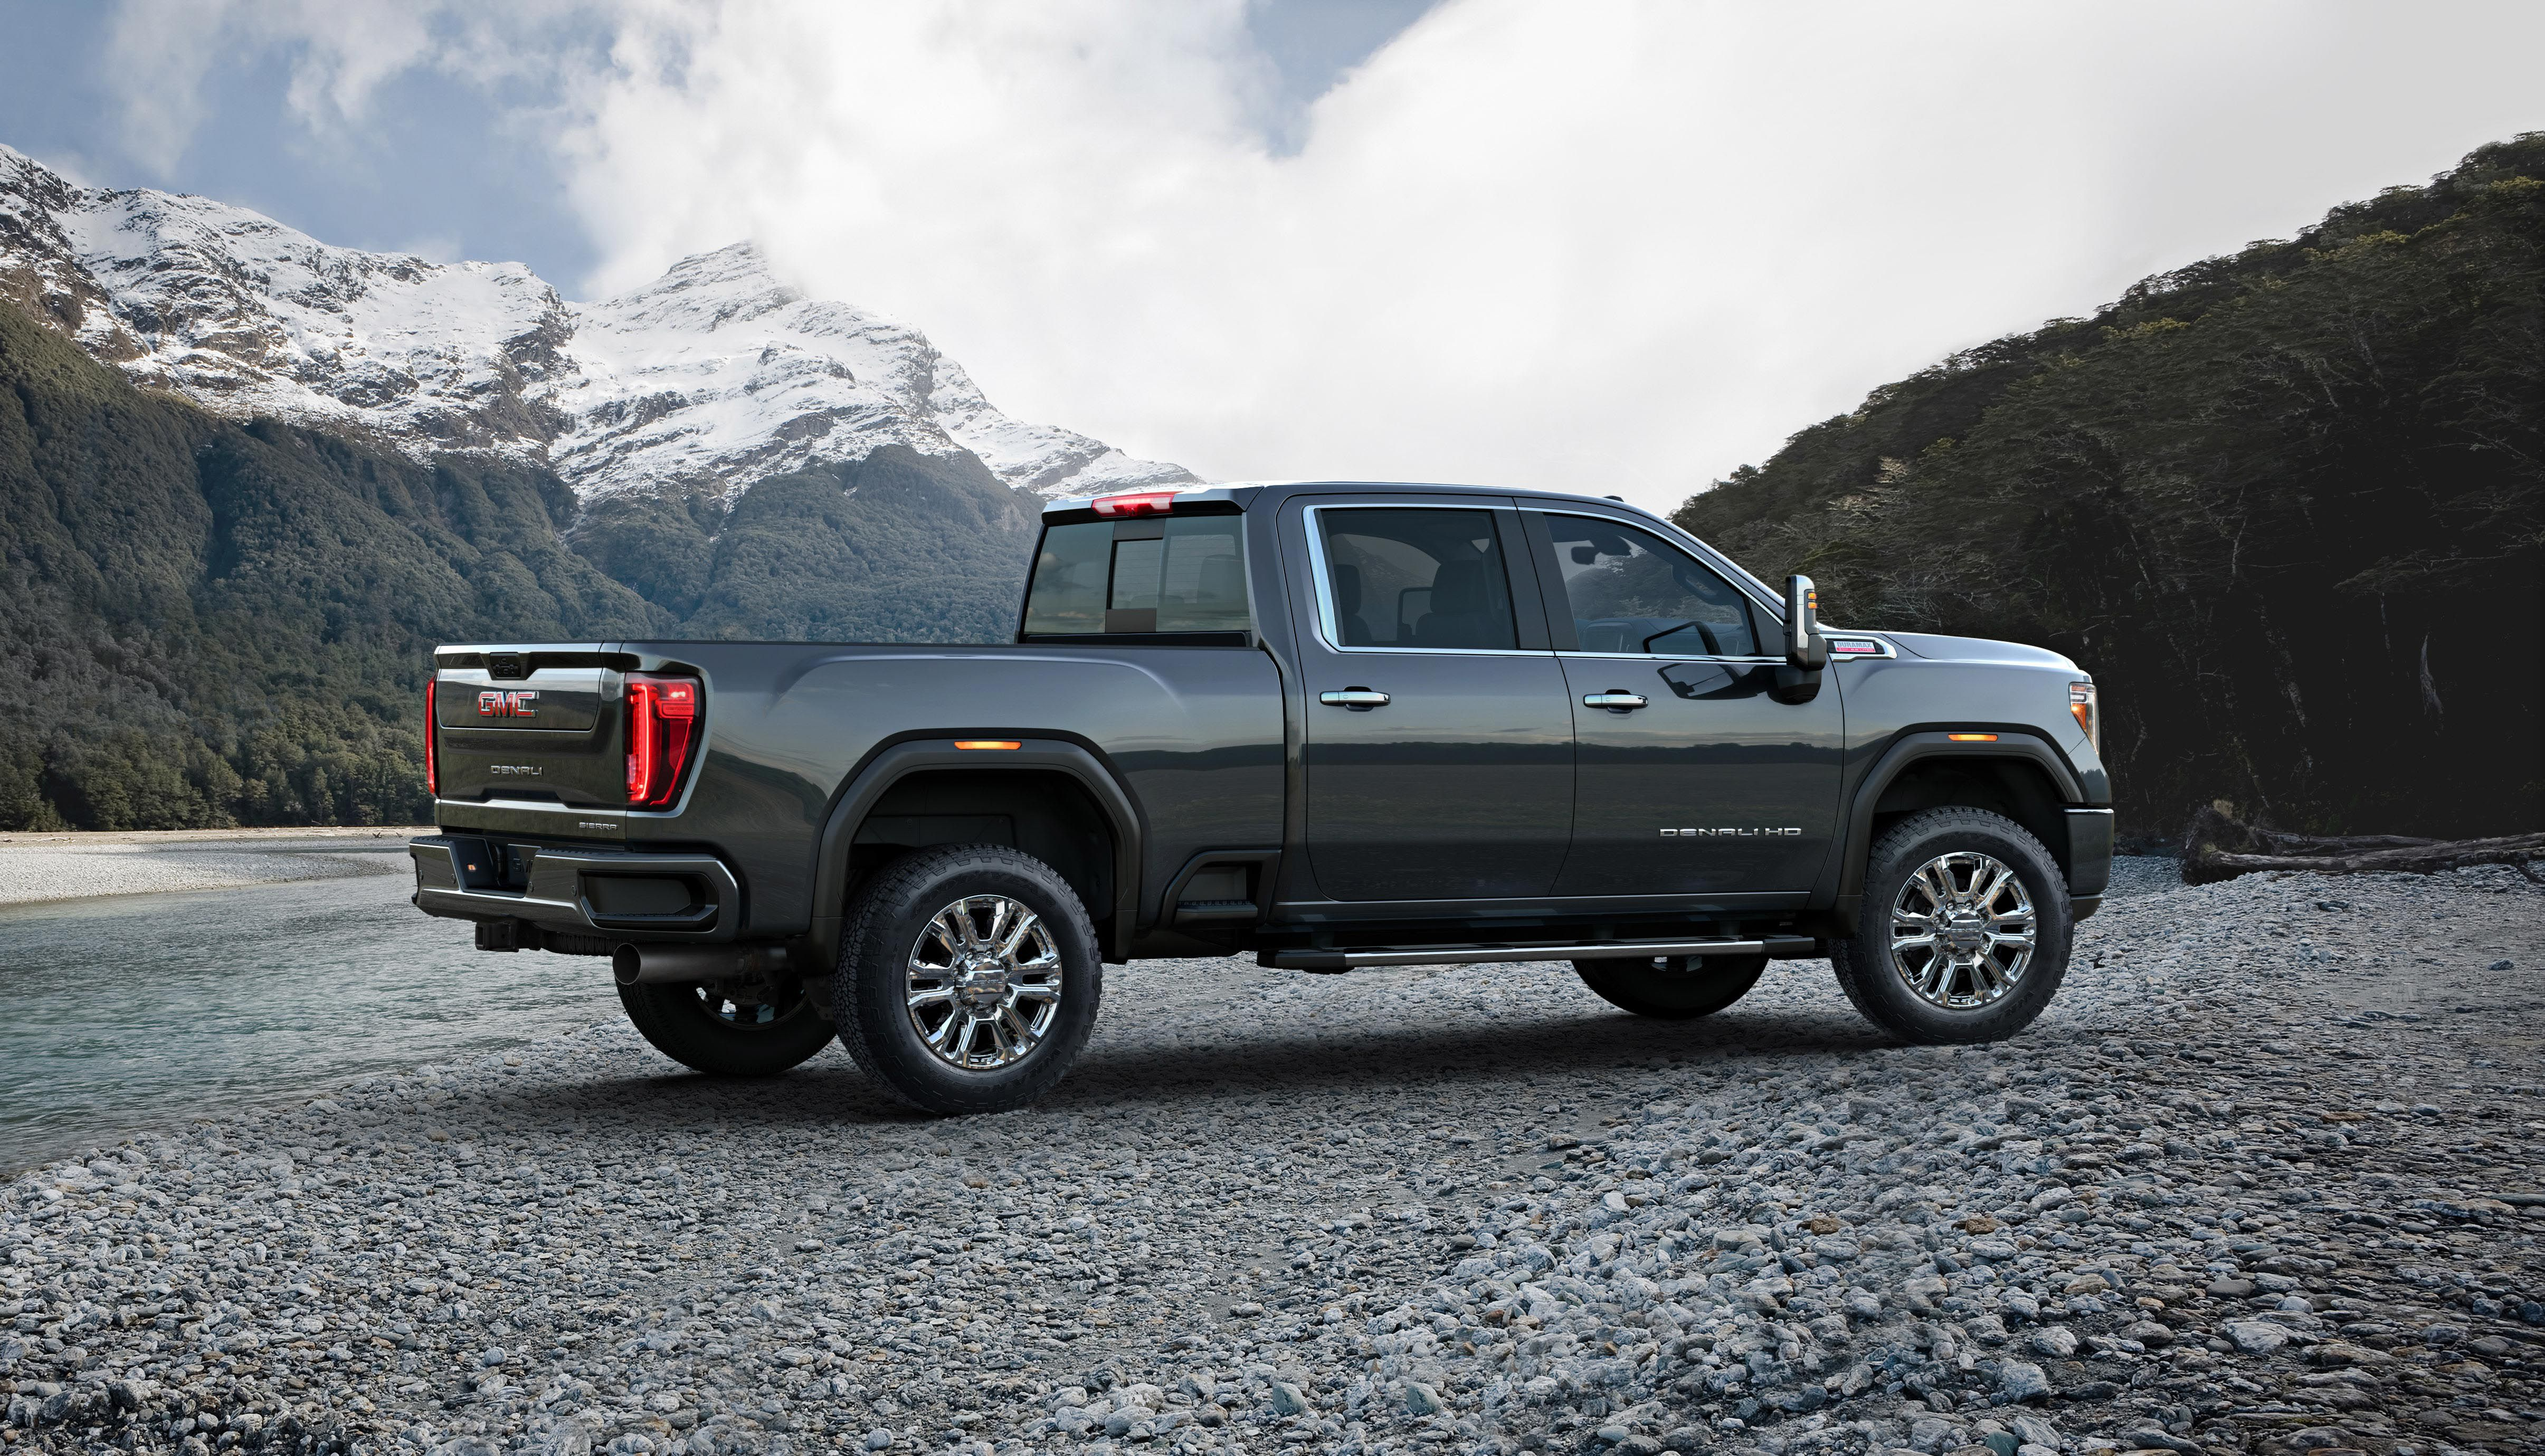 19 Best 2020 GMC Sierra 2500Hd Specs and Review